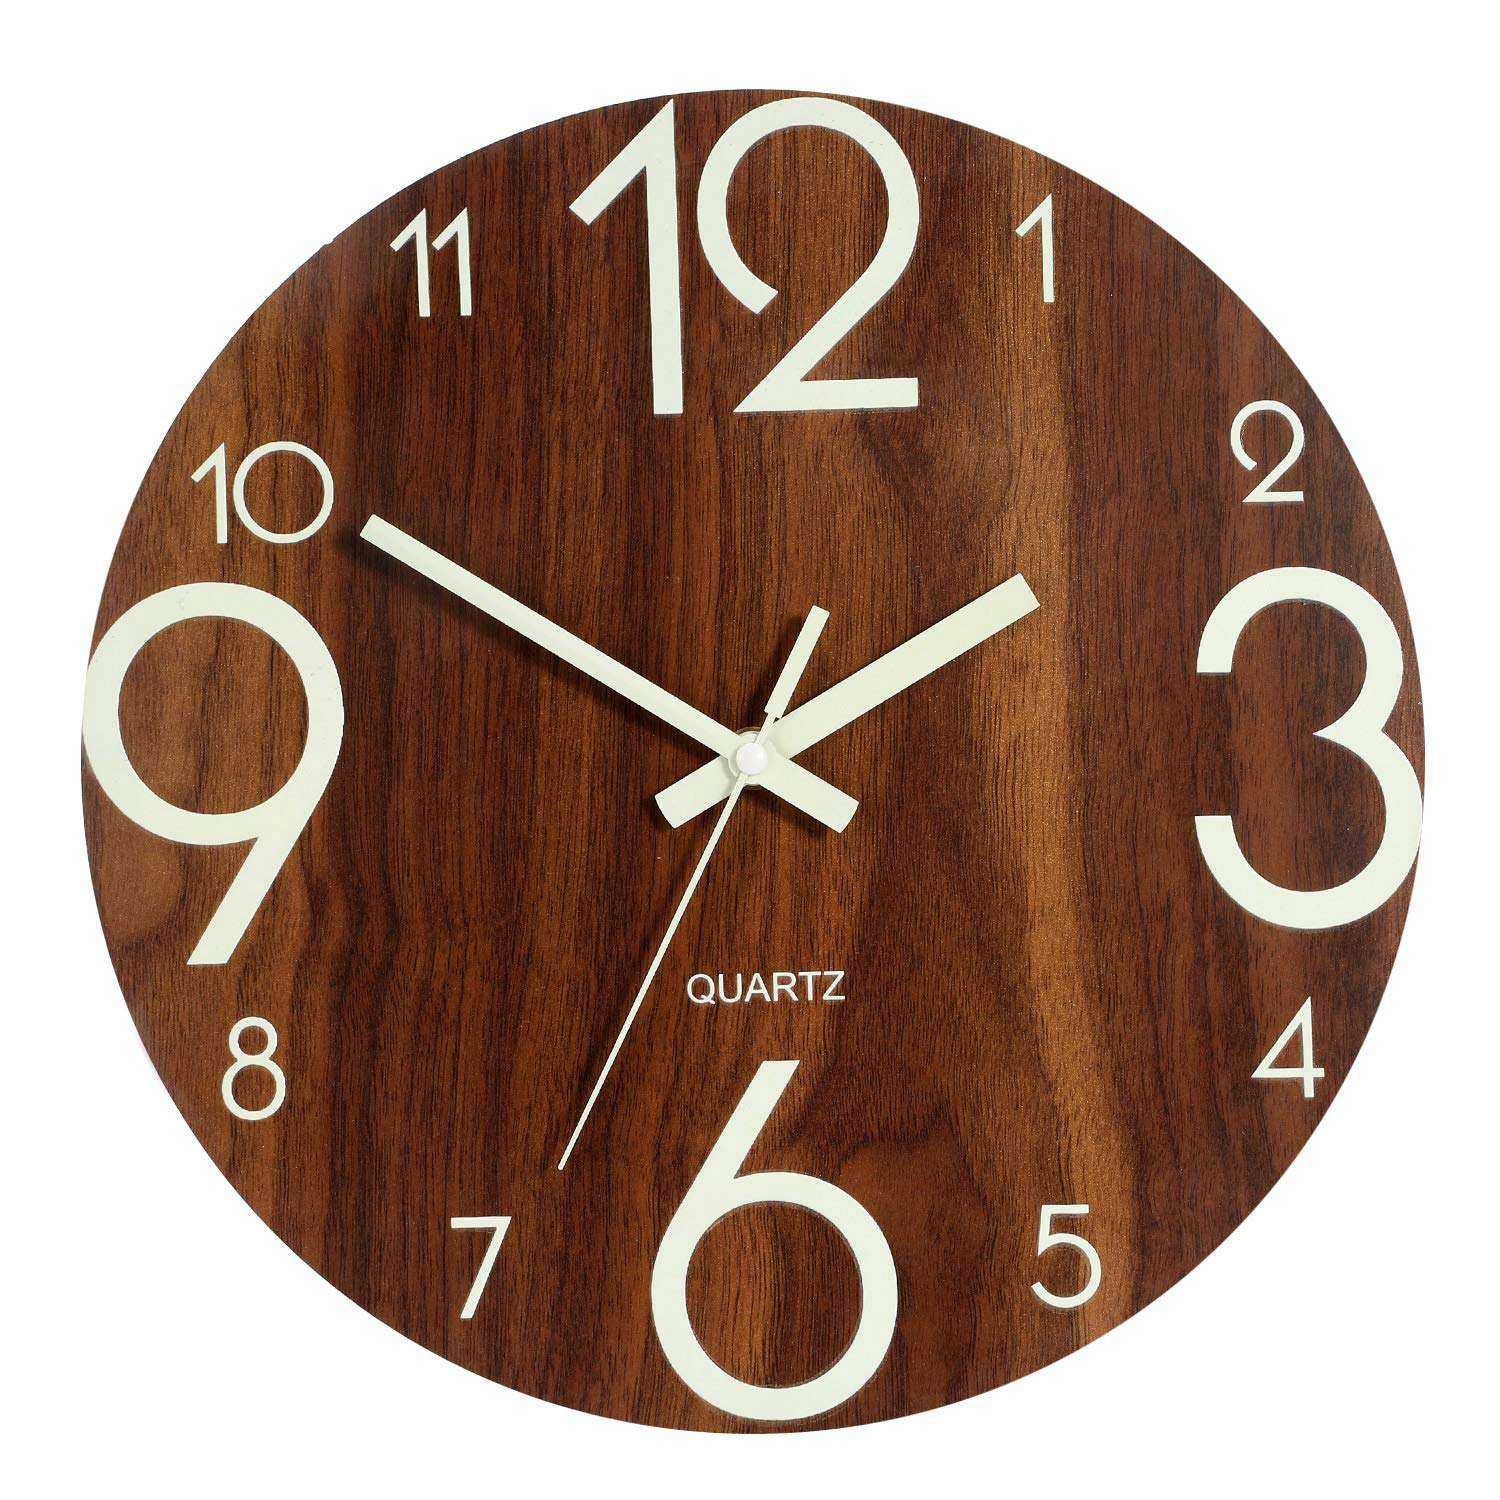 US $10.45 15% OFF|ALIM HOT Luminous Wall Clock,12 Inch Wooden Silent Non  Ticking Kitchen Wall Clocks With Night Lights For Indoor/Outdoor Living-in  ...